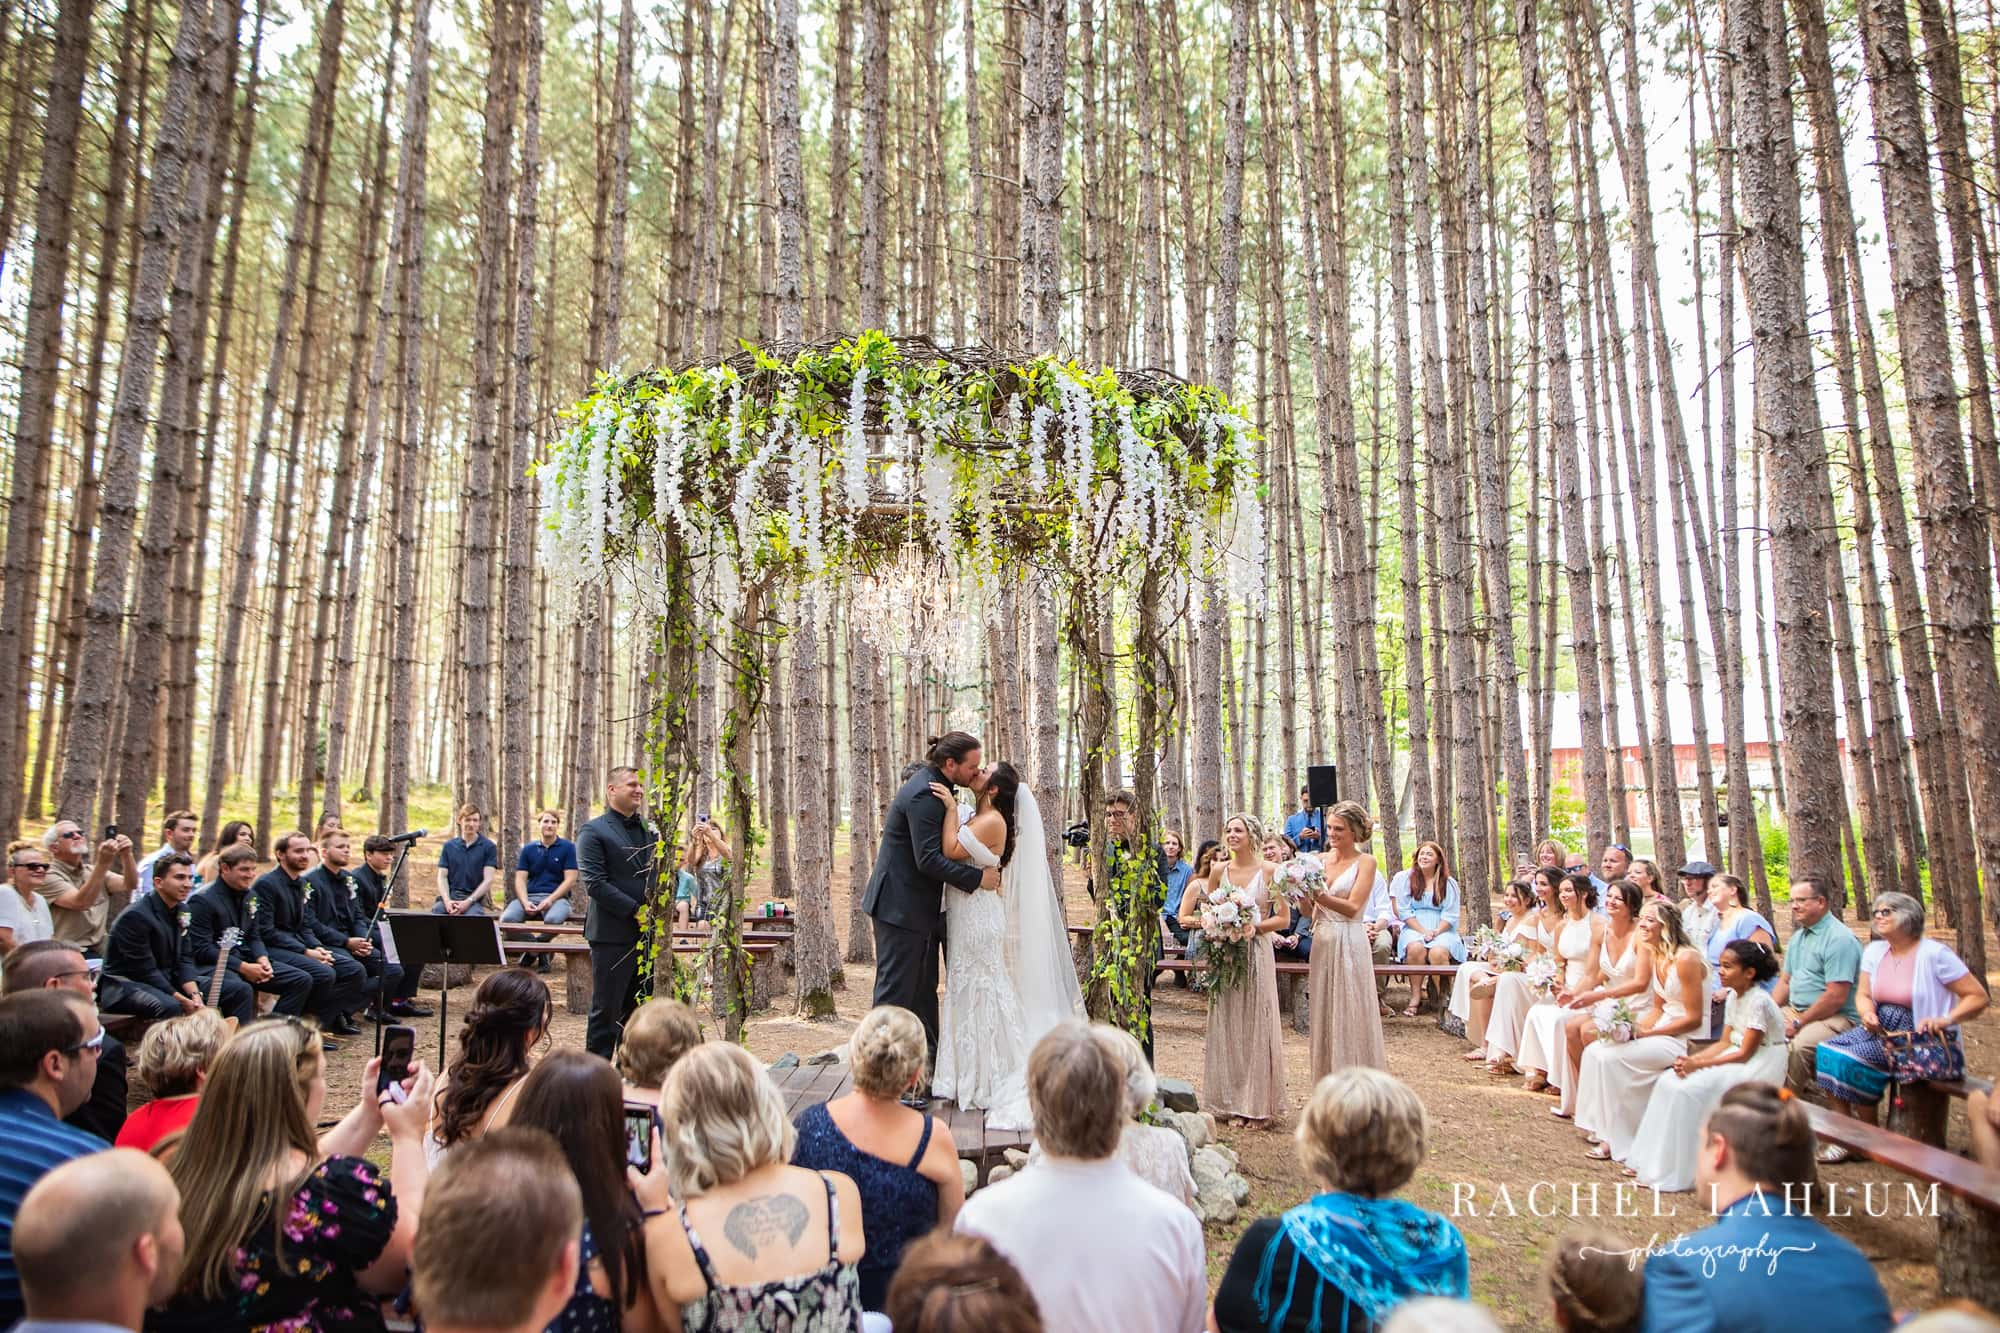 Bride and groom kiss as a married couple under gazebo at outdoor venue in Big Fork, Minnesota.